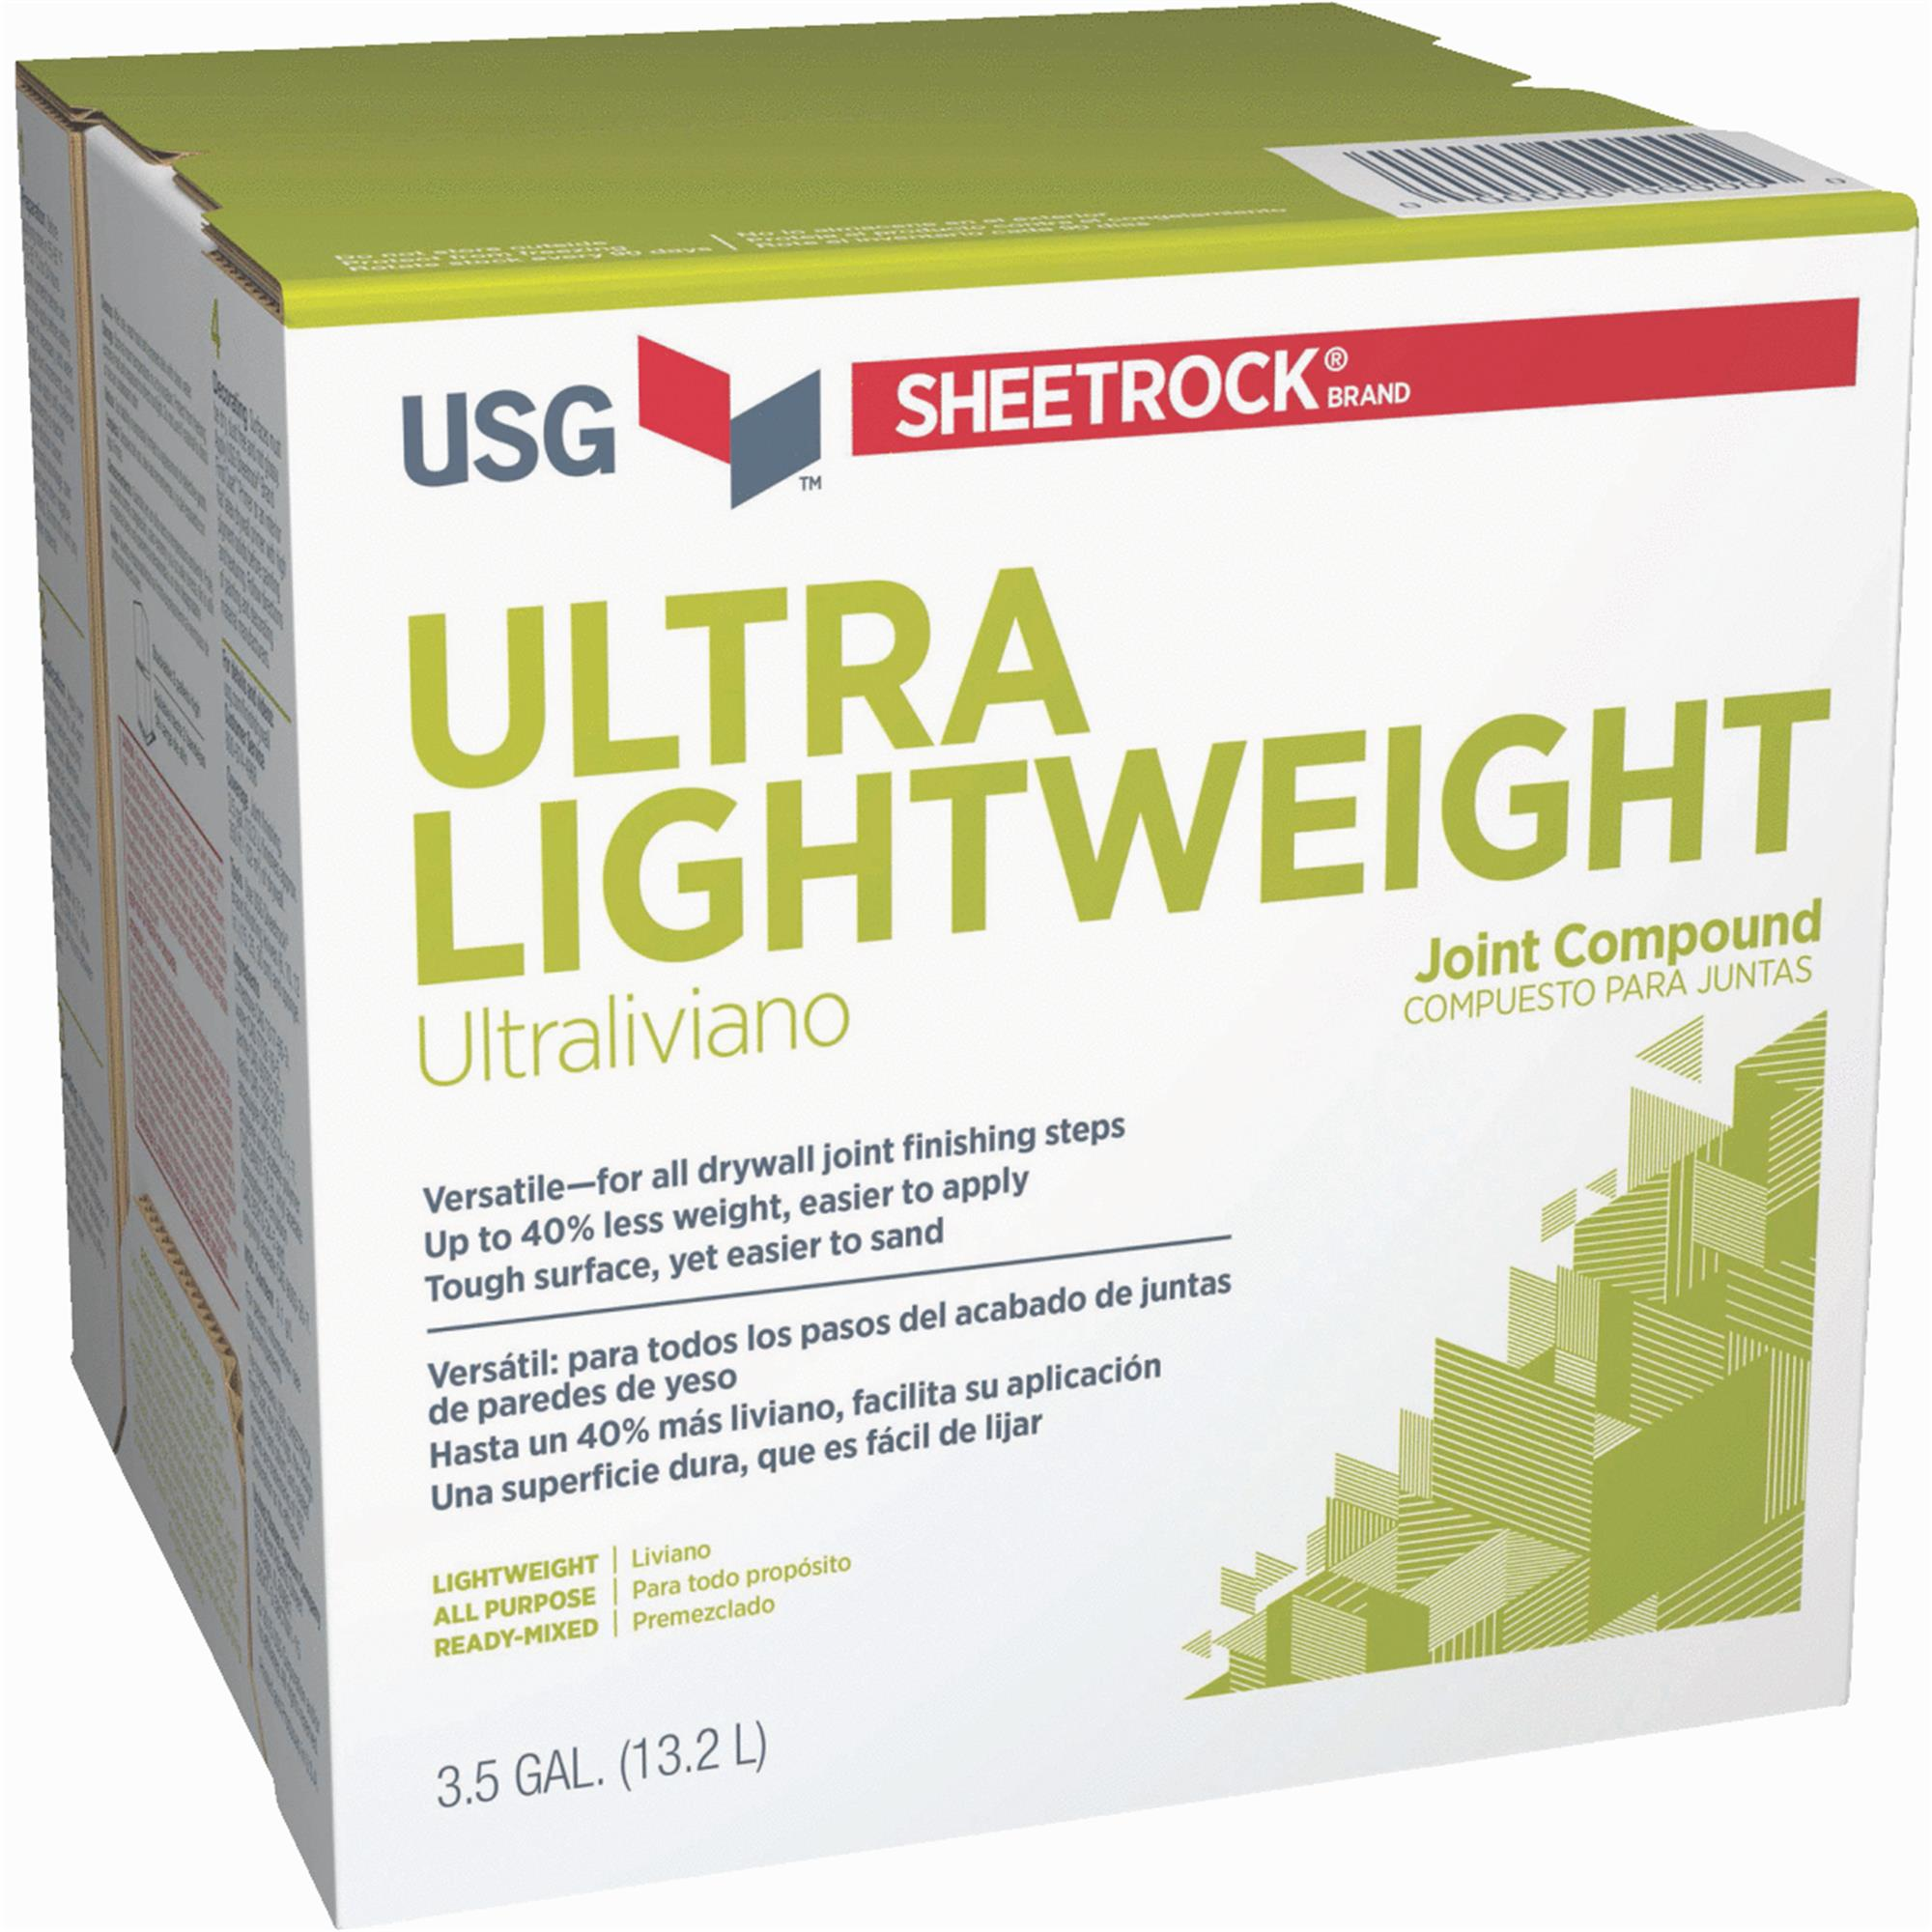 SHeetrock Pre-Mixed Ultra Lightweight All-Purpose Drywall Joint Compound by USG